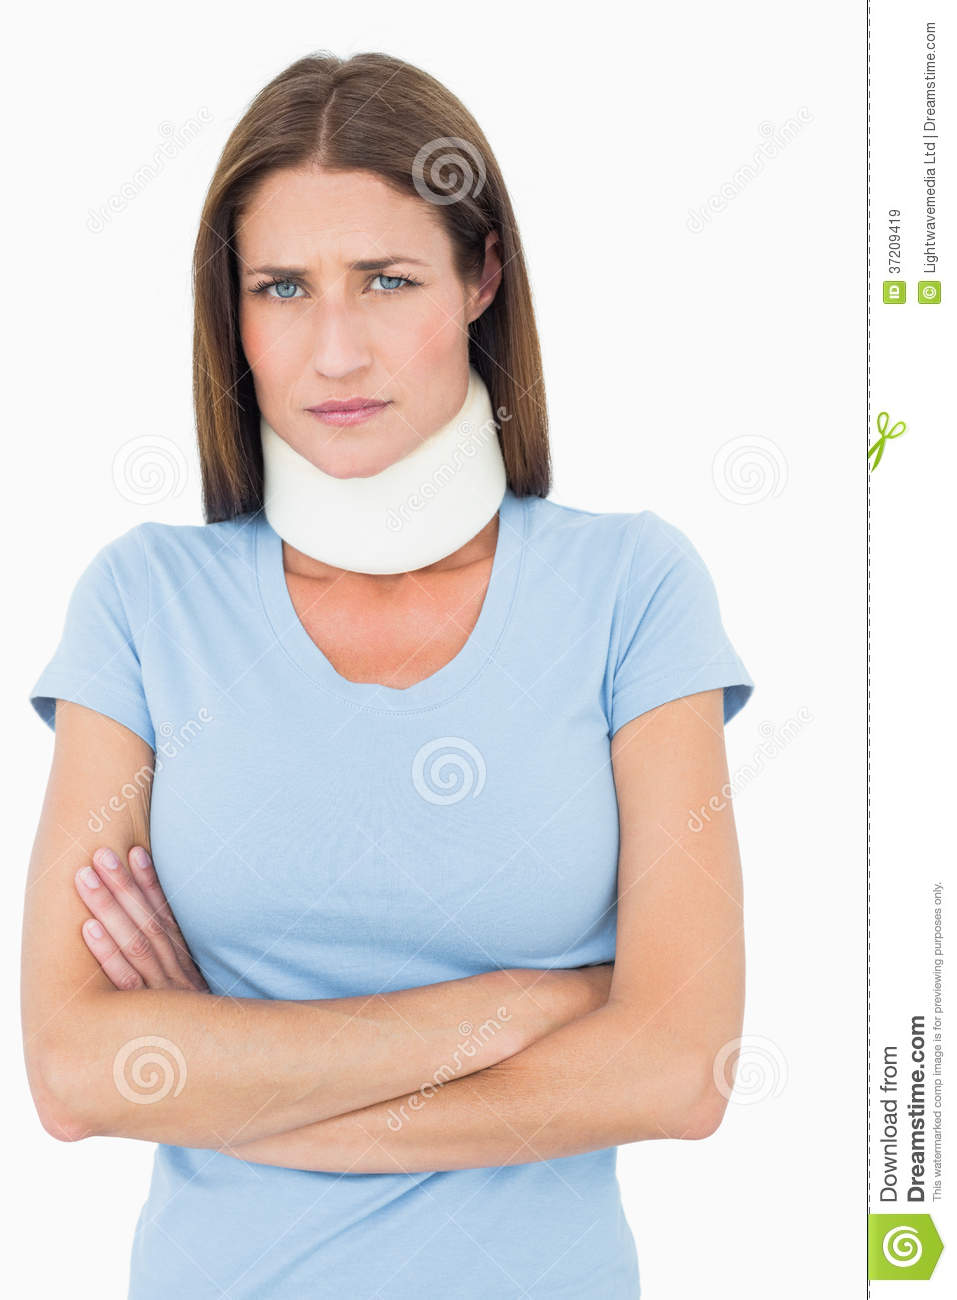 how to wear a cervical collar